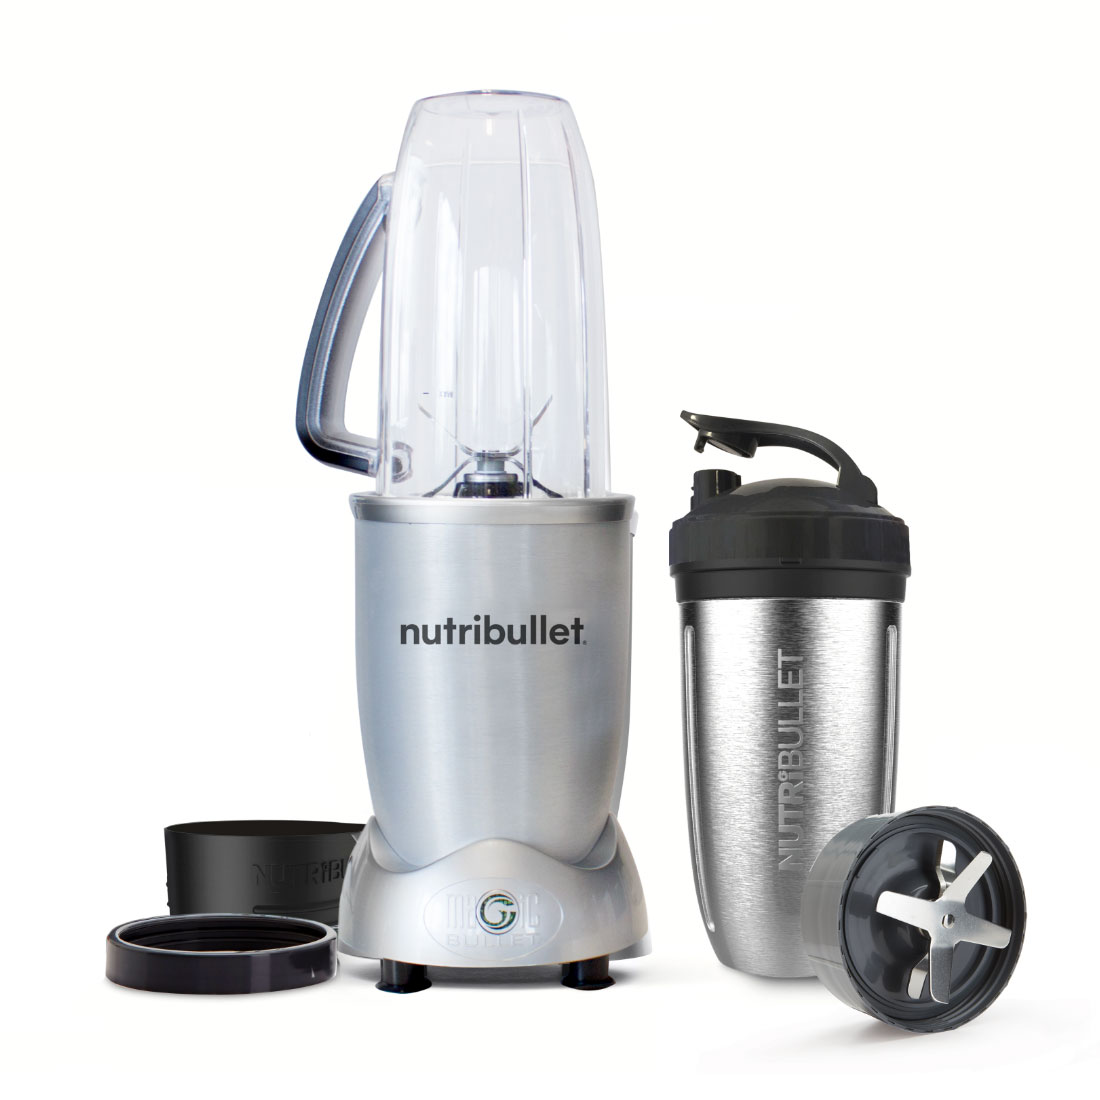 An image of NutriBullet 1200 Series